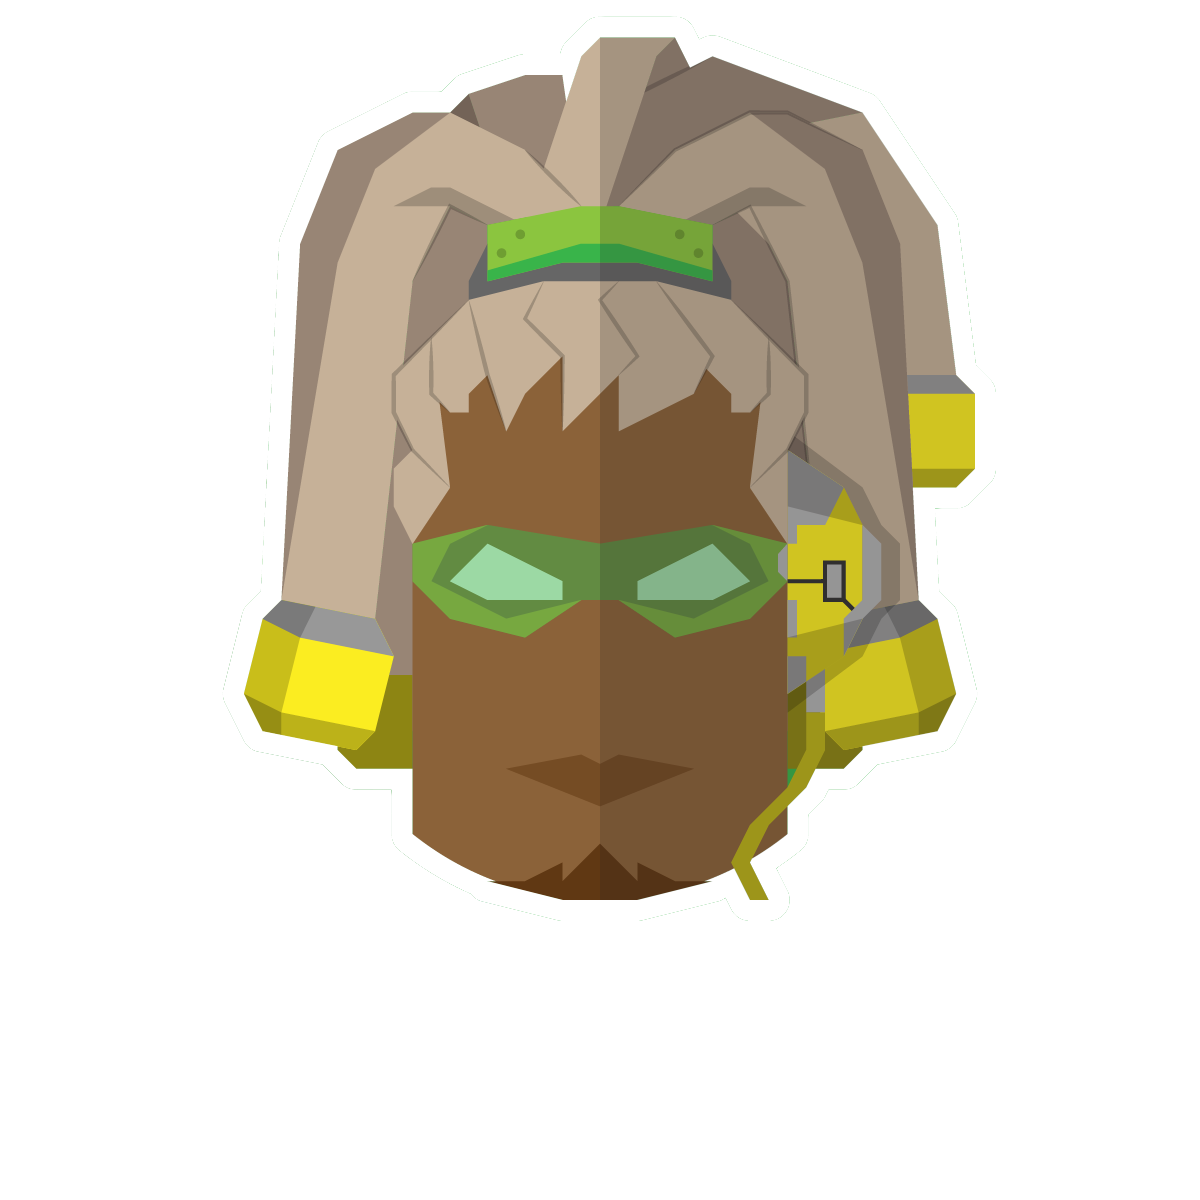 The Heroes Of Overwatch Sticker Pack messages sticker-1